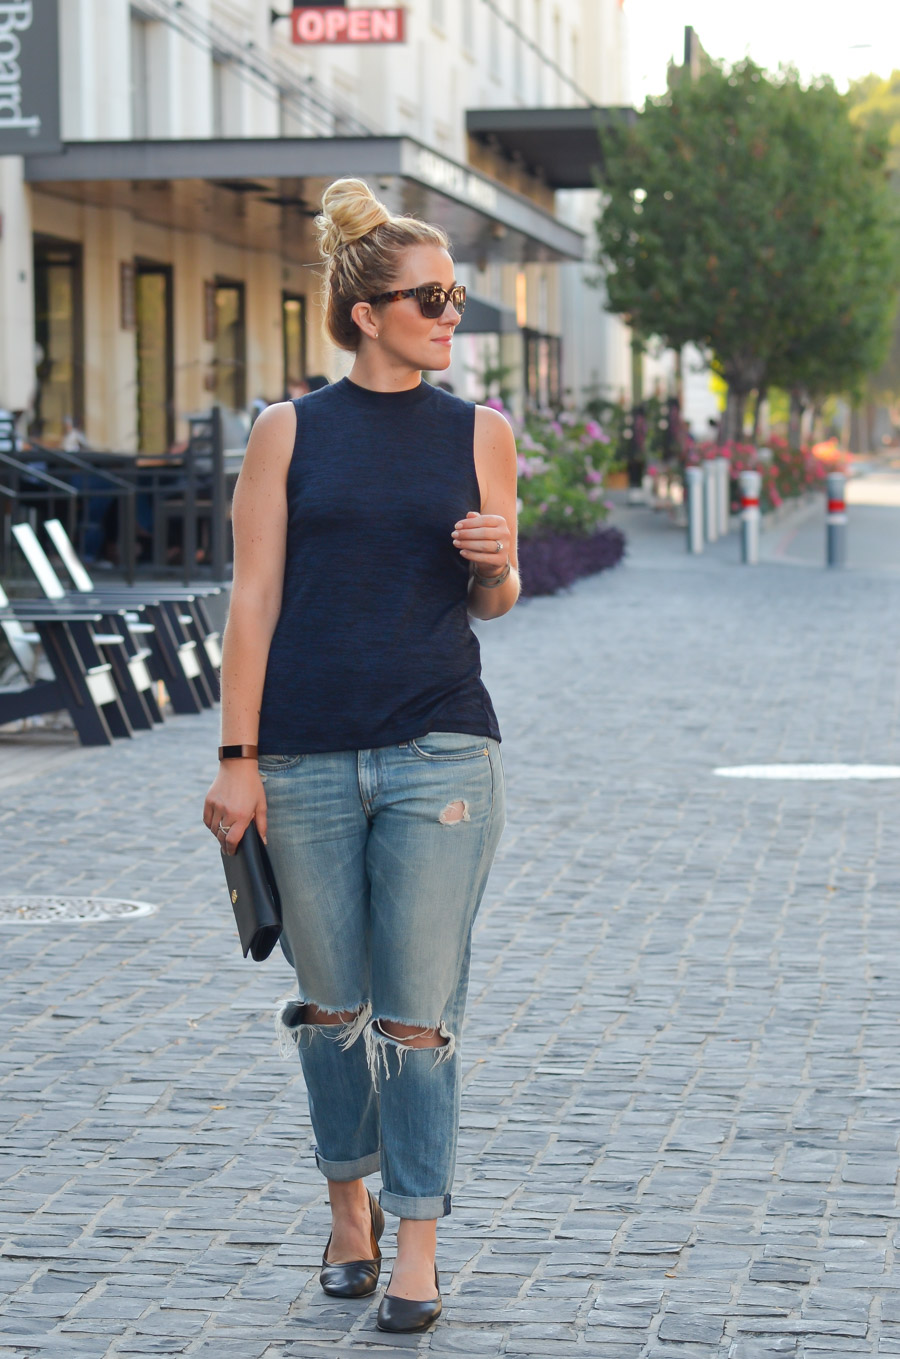 ea35afc66bc9 Boyfriend Jeans + Sleeveless Turtleneck Outfit Ideas for Summer